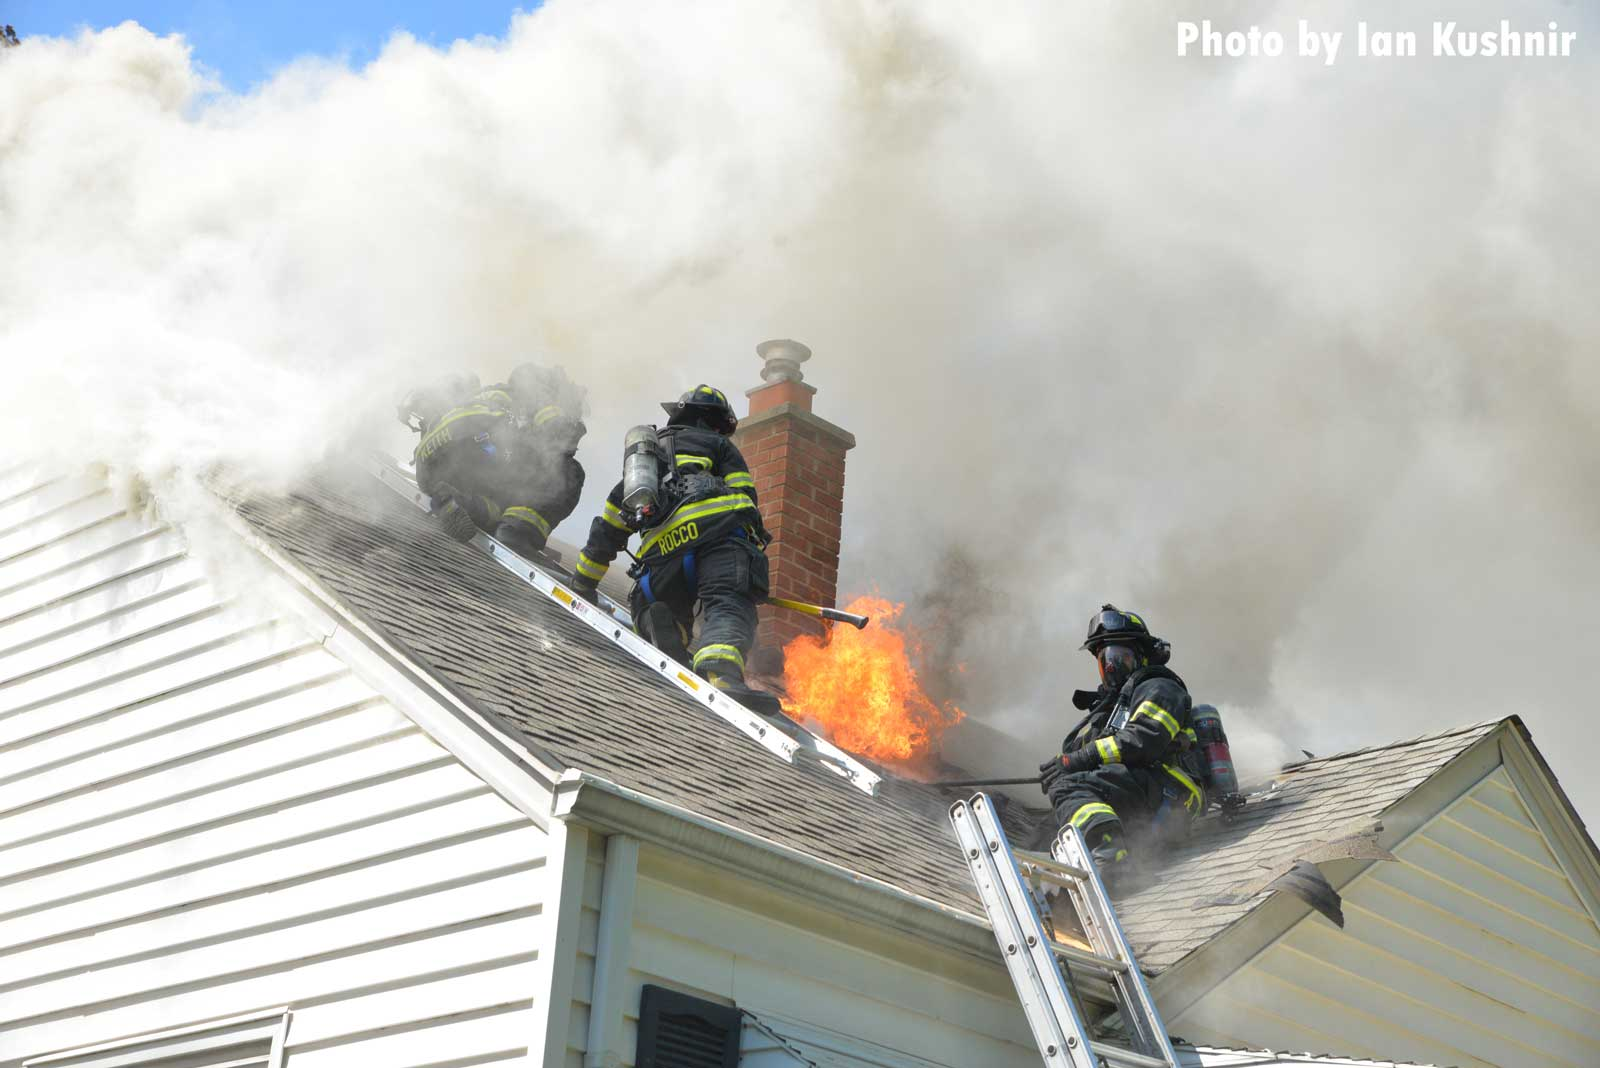 Flames shoot through the roof of the home